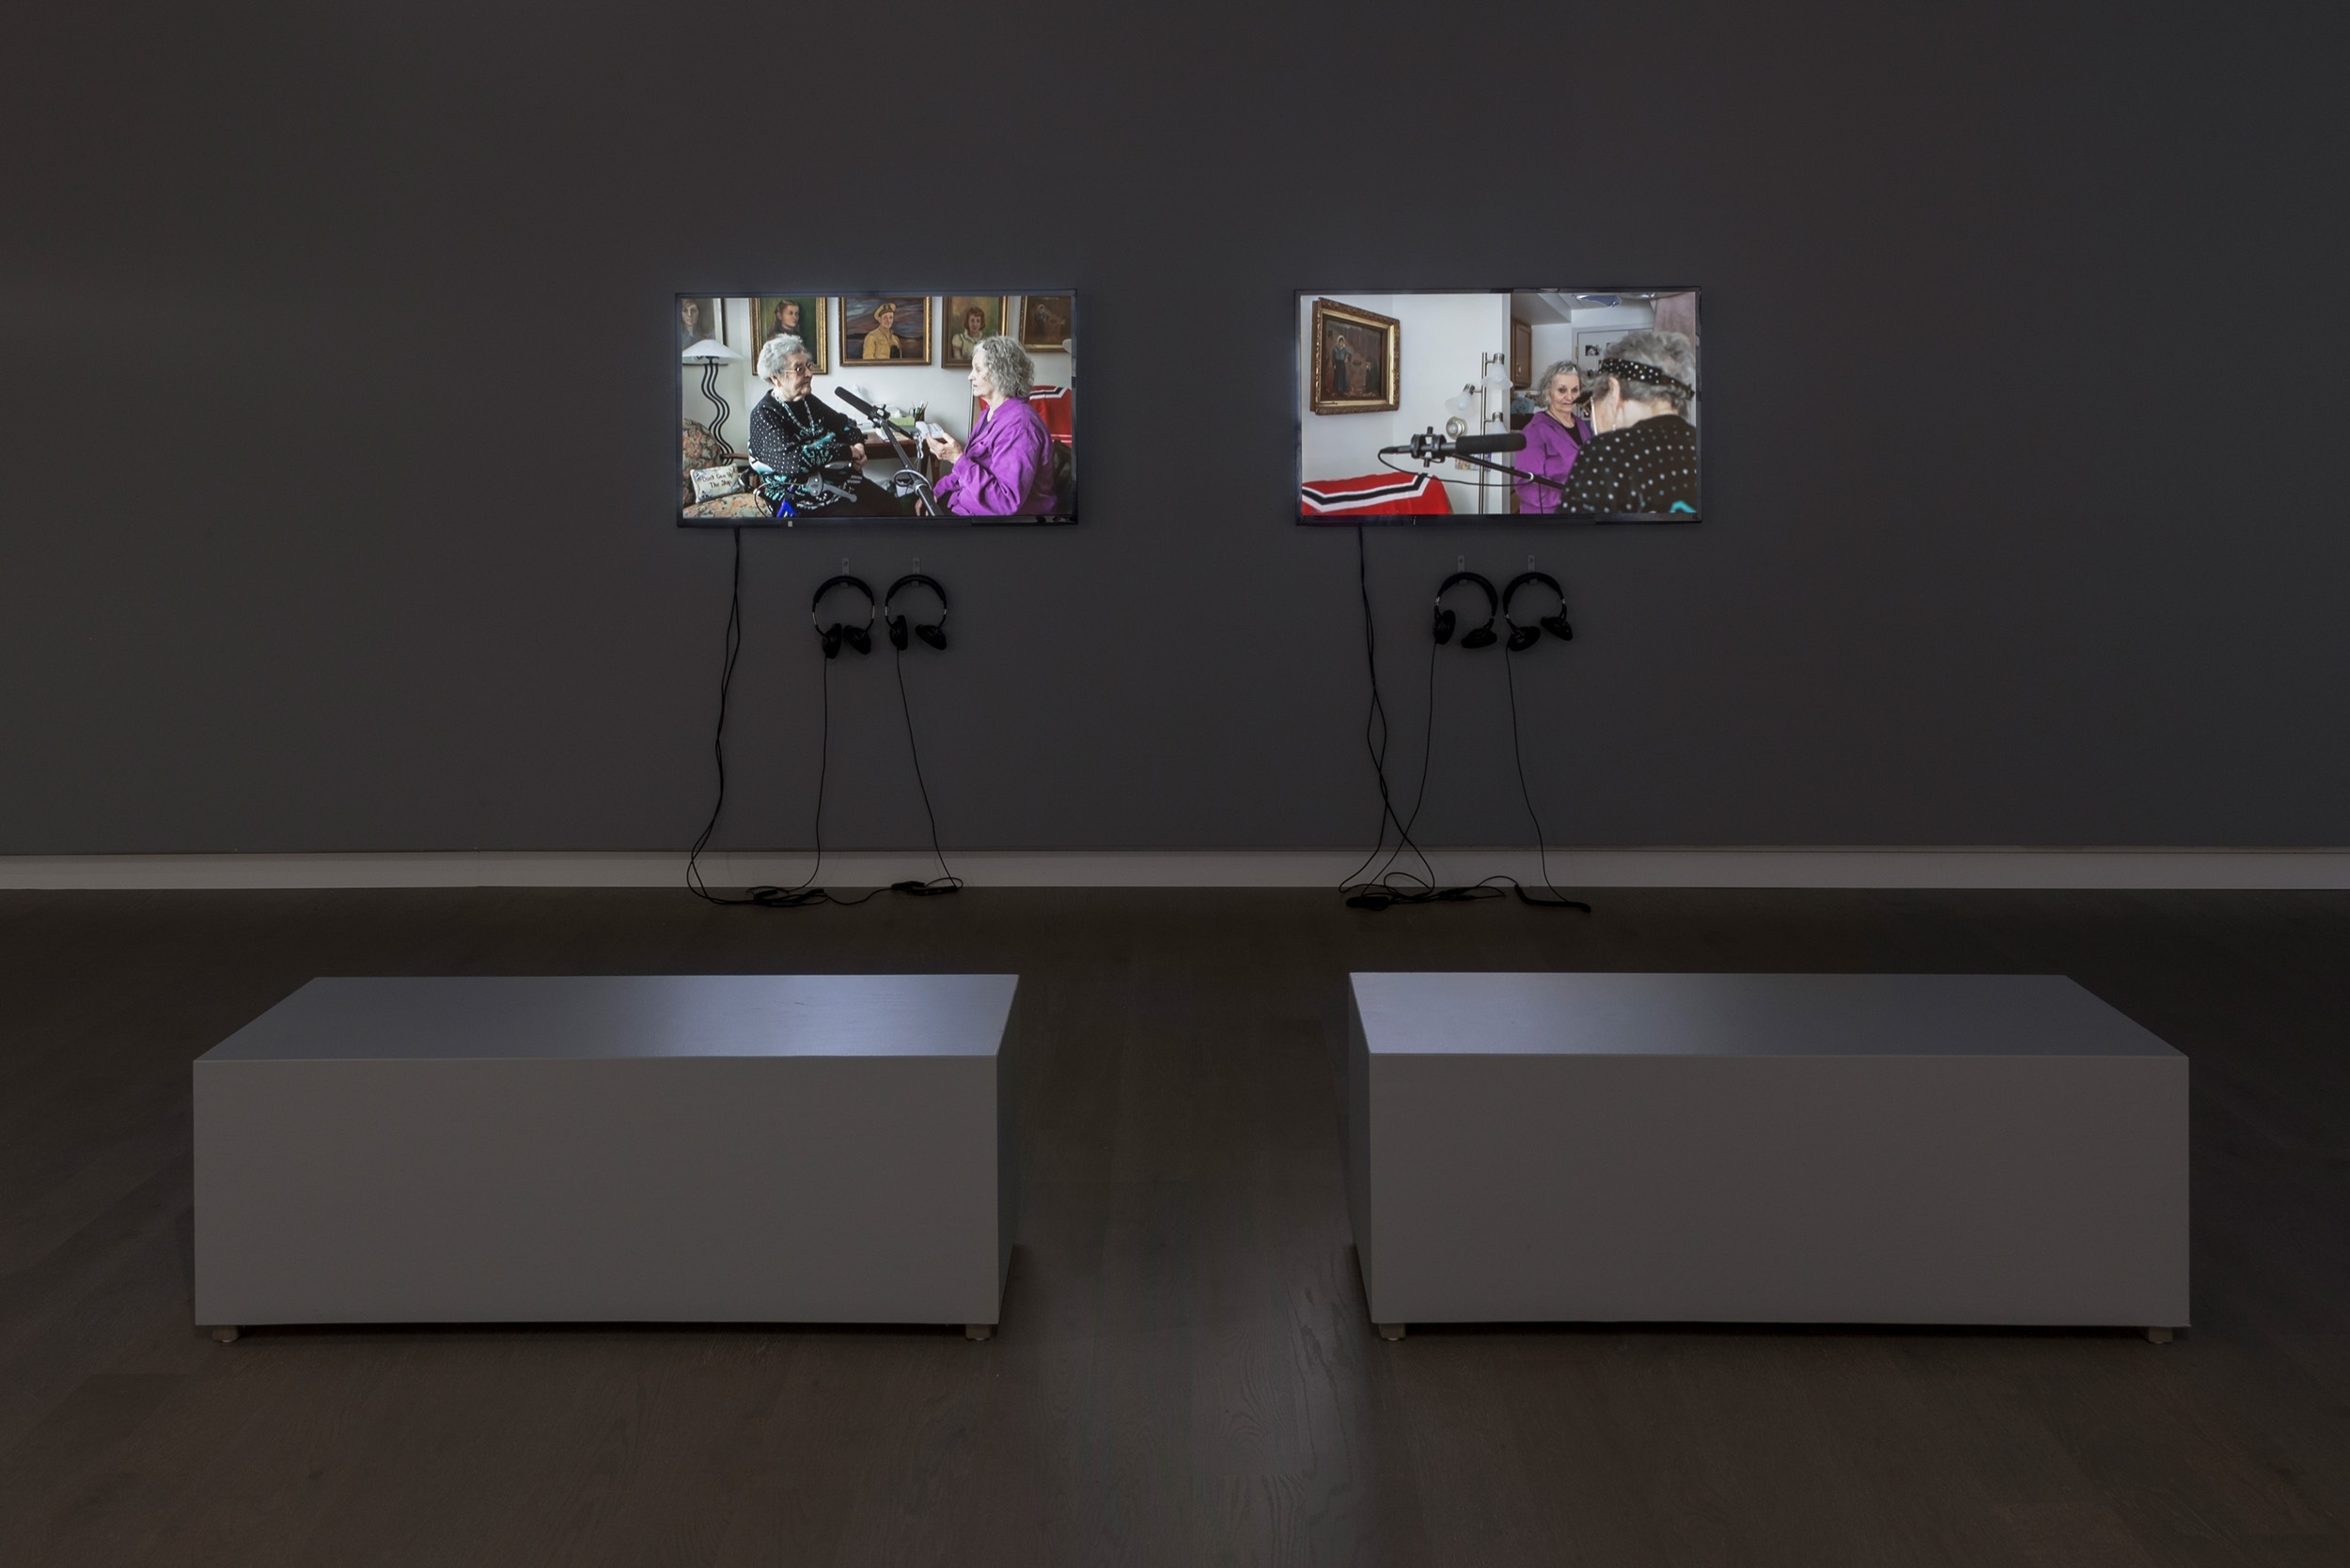 Three Generations (Kodiak Art Club, 1953) , 2014 Left:  Kodiak Art Club , 2014, HD video with stereo sound, 5 min 21s, Right:  Photo from Kutno , 2014, HD video with stereo sound, 5 min 09s  Installation view at Koffler Gallery, Toronto. Produced with the assistance of the Koffler Gallery. Photograph by Toni Hafkenscheid